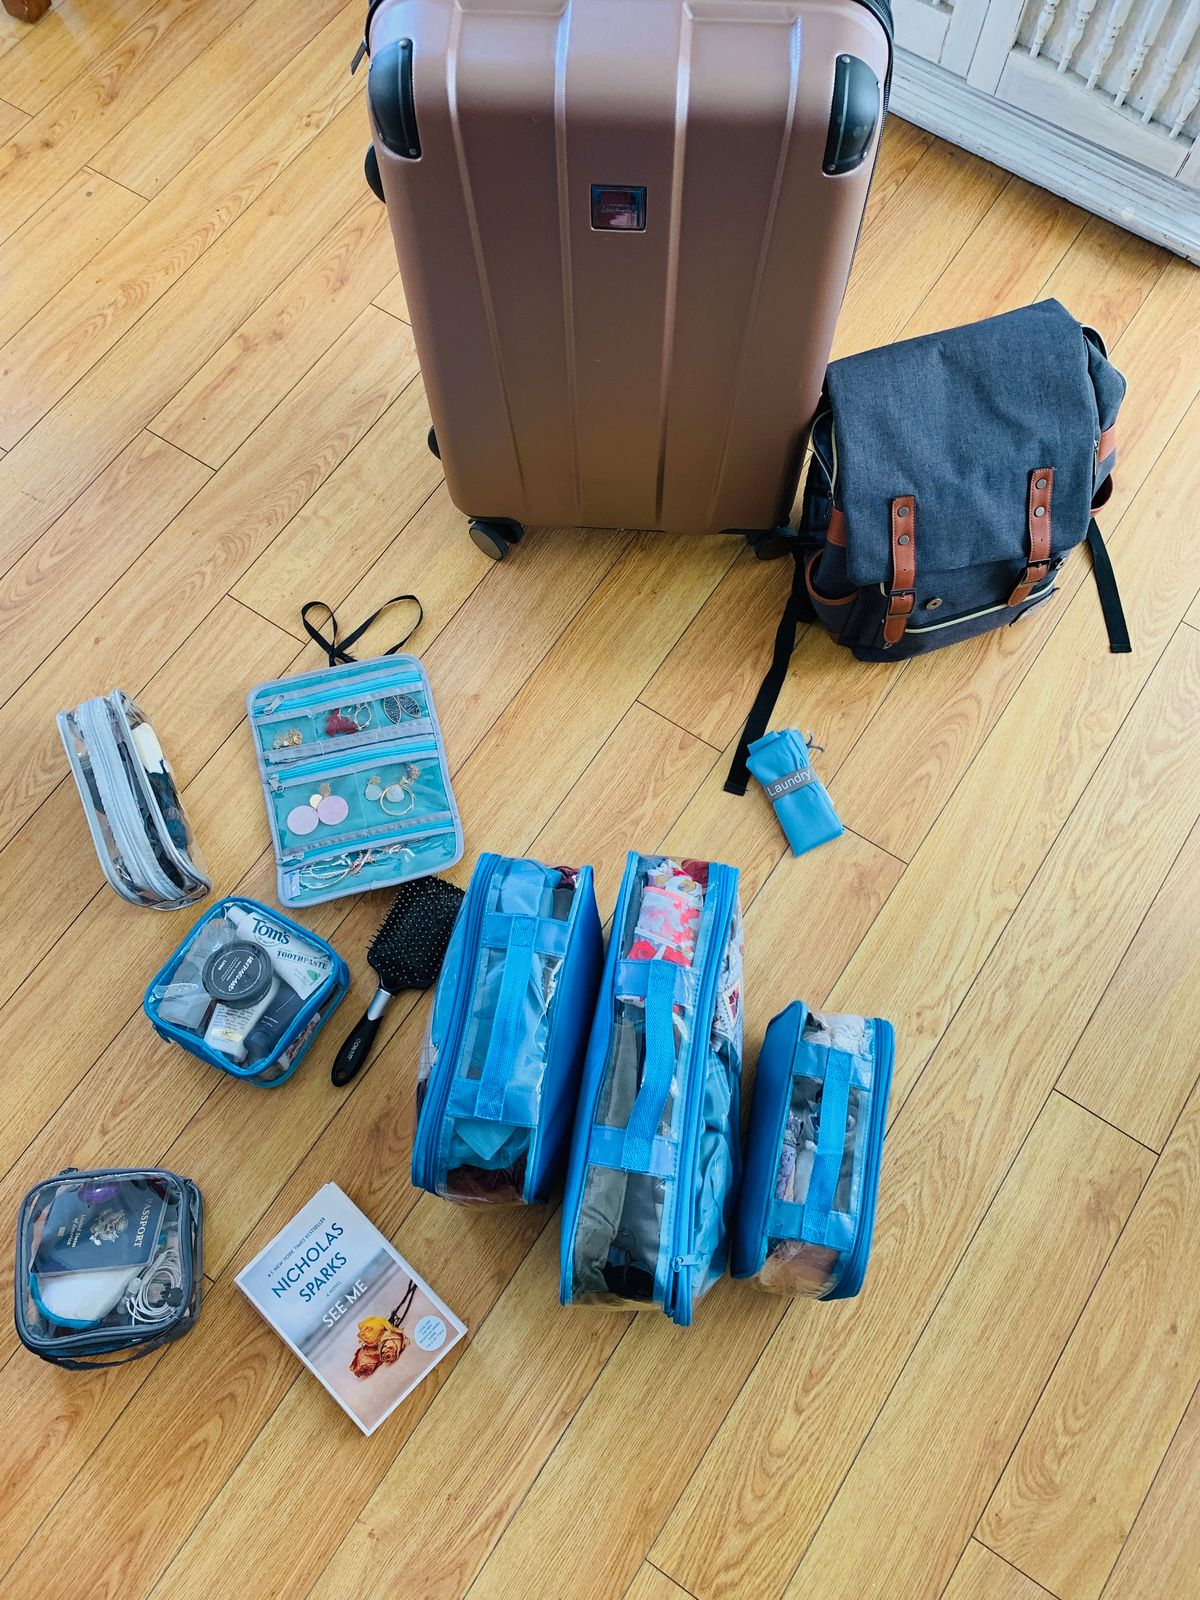 Suitcase, backpack, and other travel items on the floor